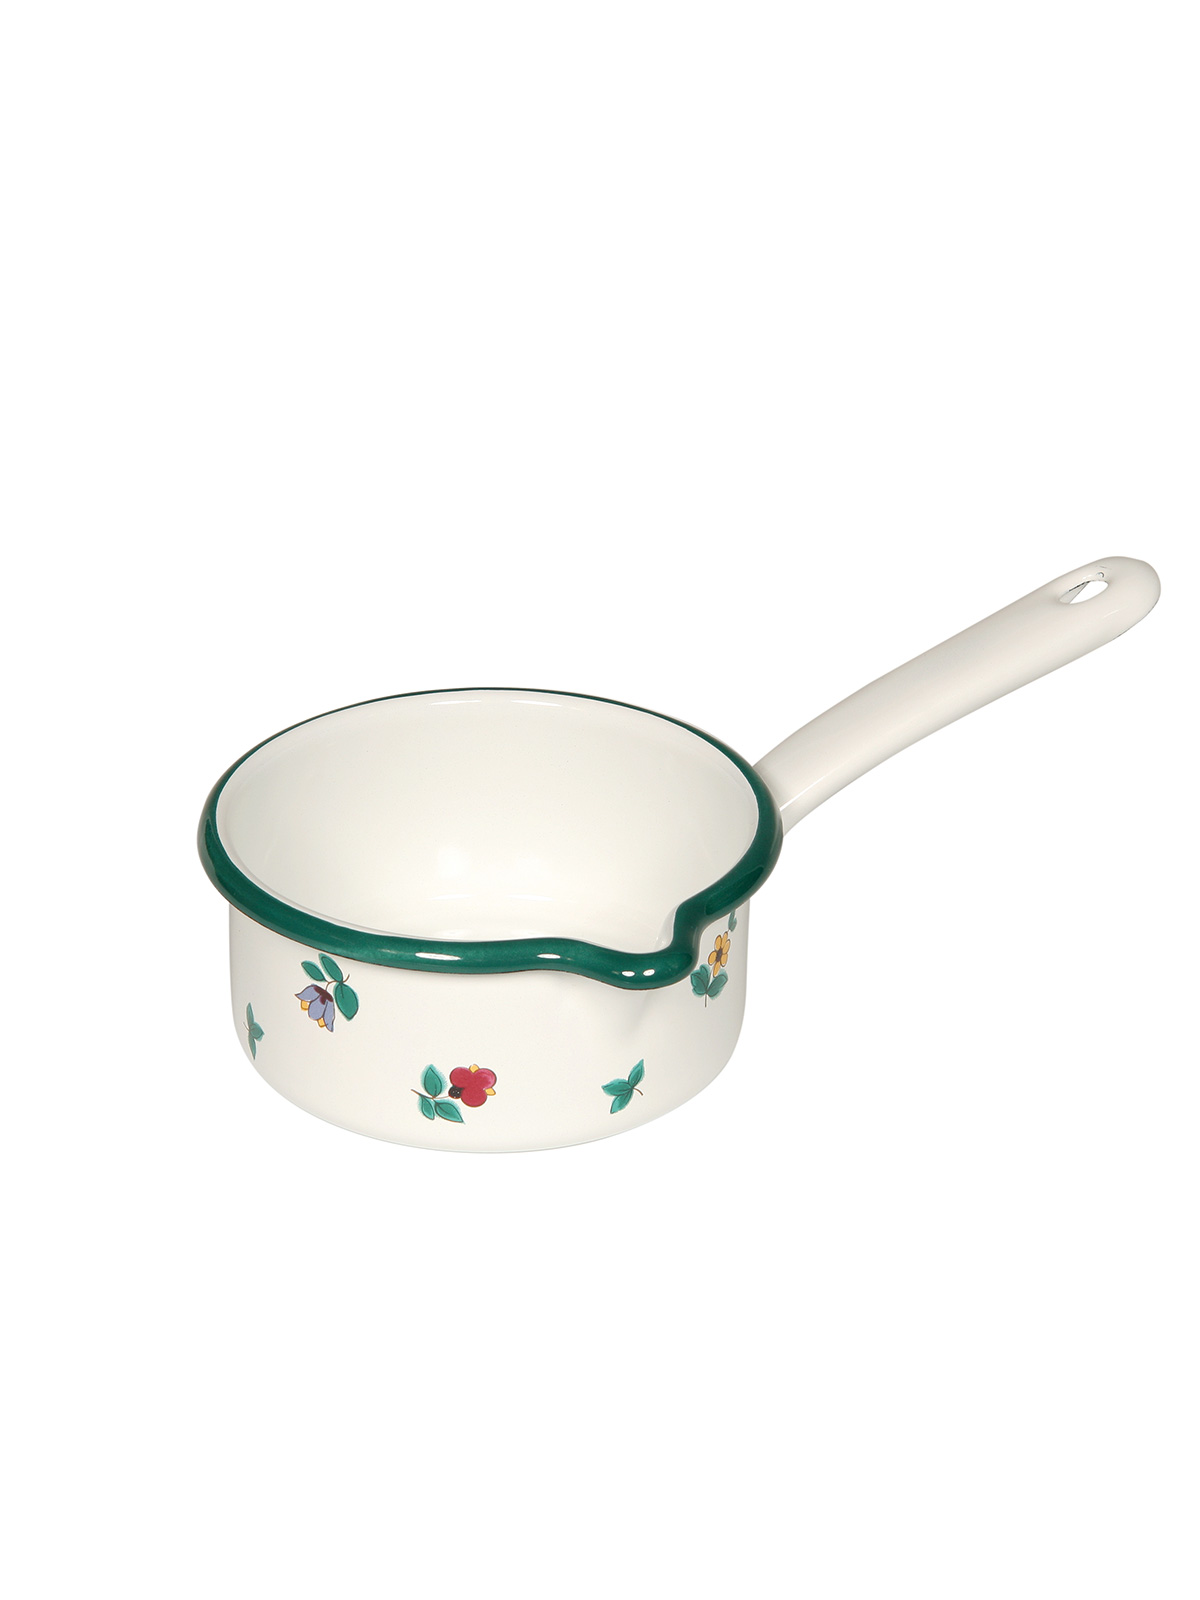 saucepan with spout with flowers 0.75l (0036-49)